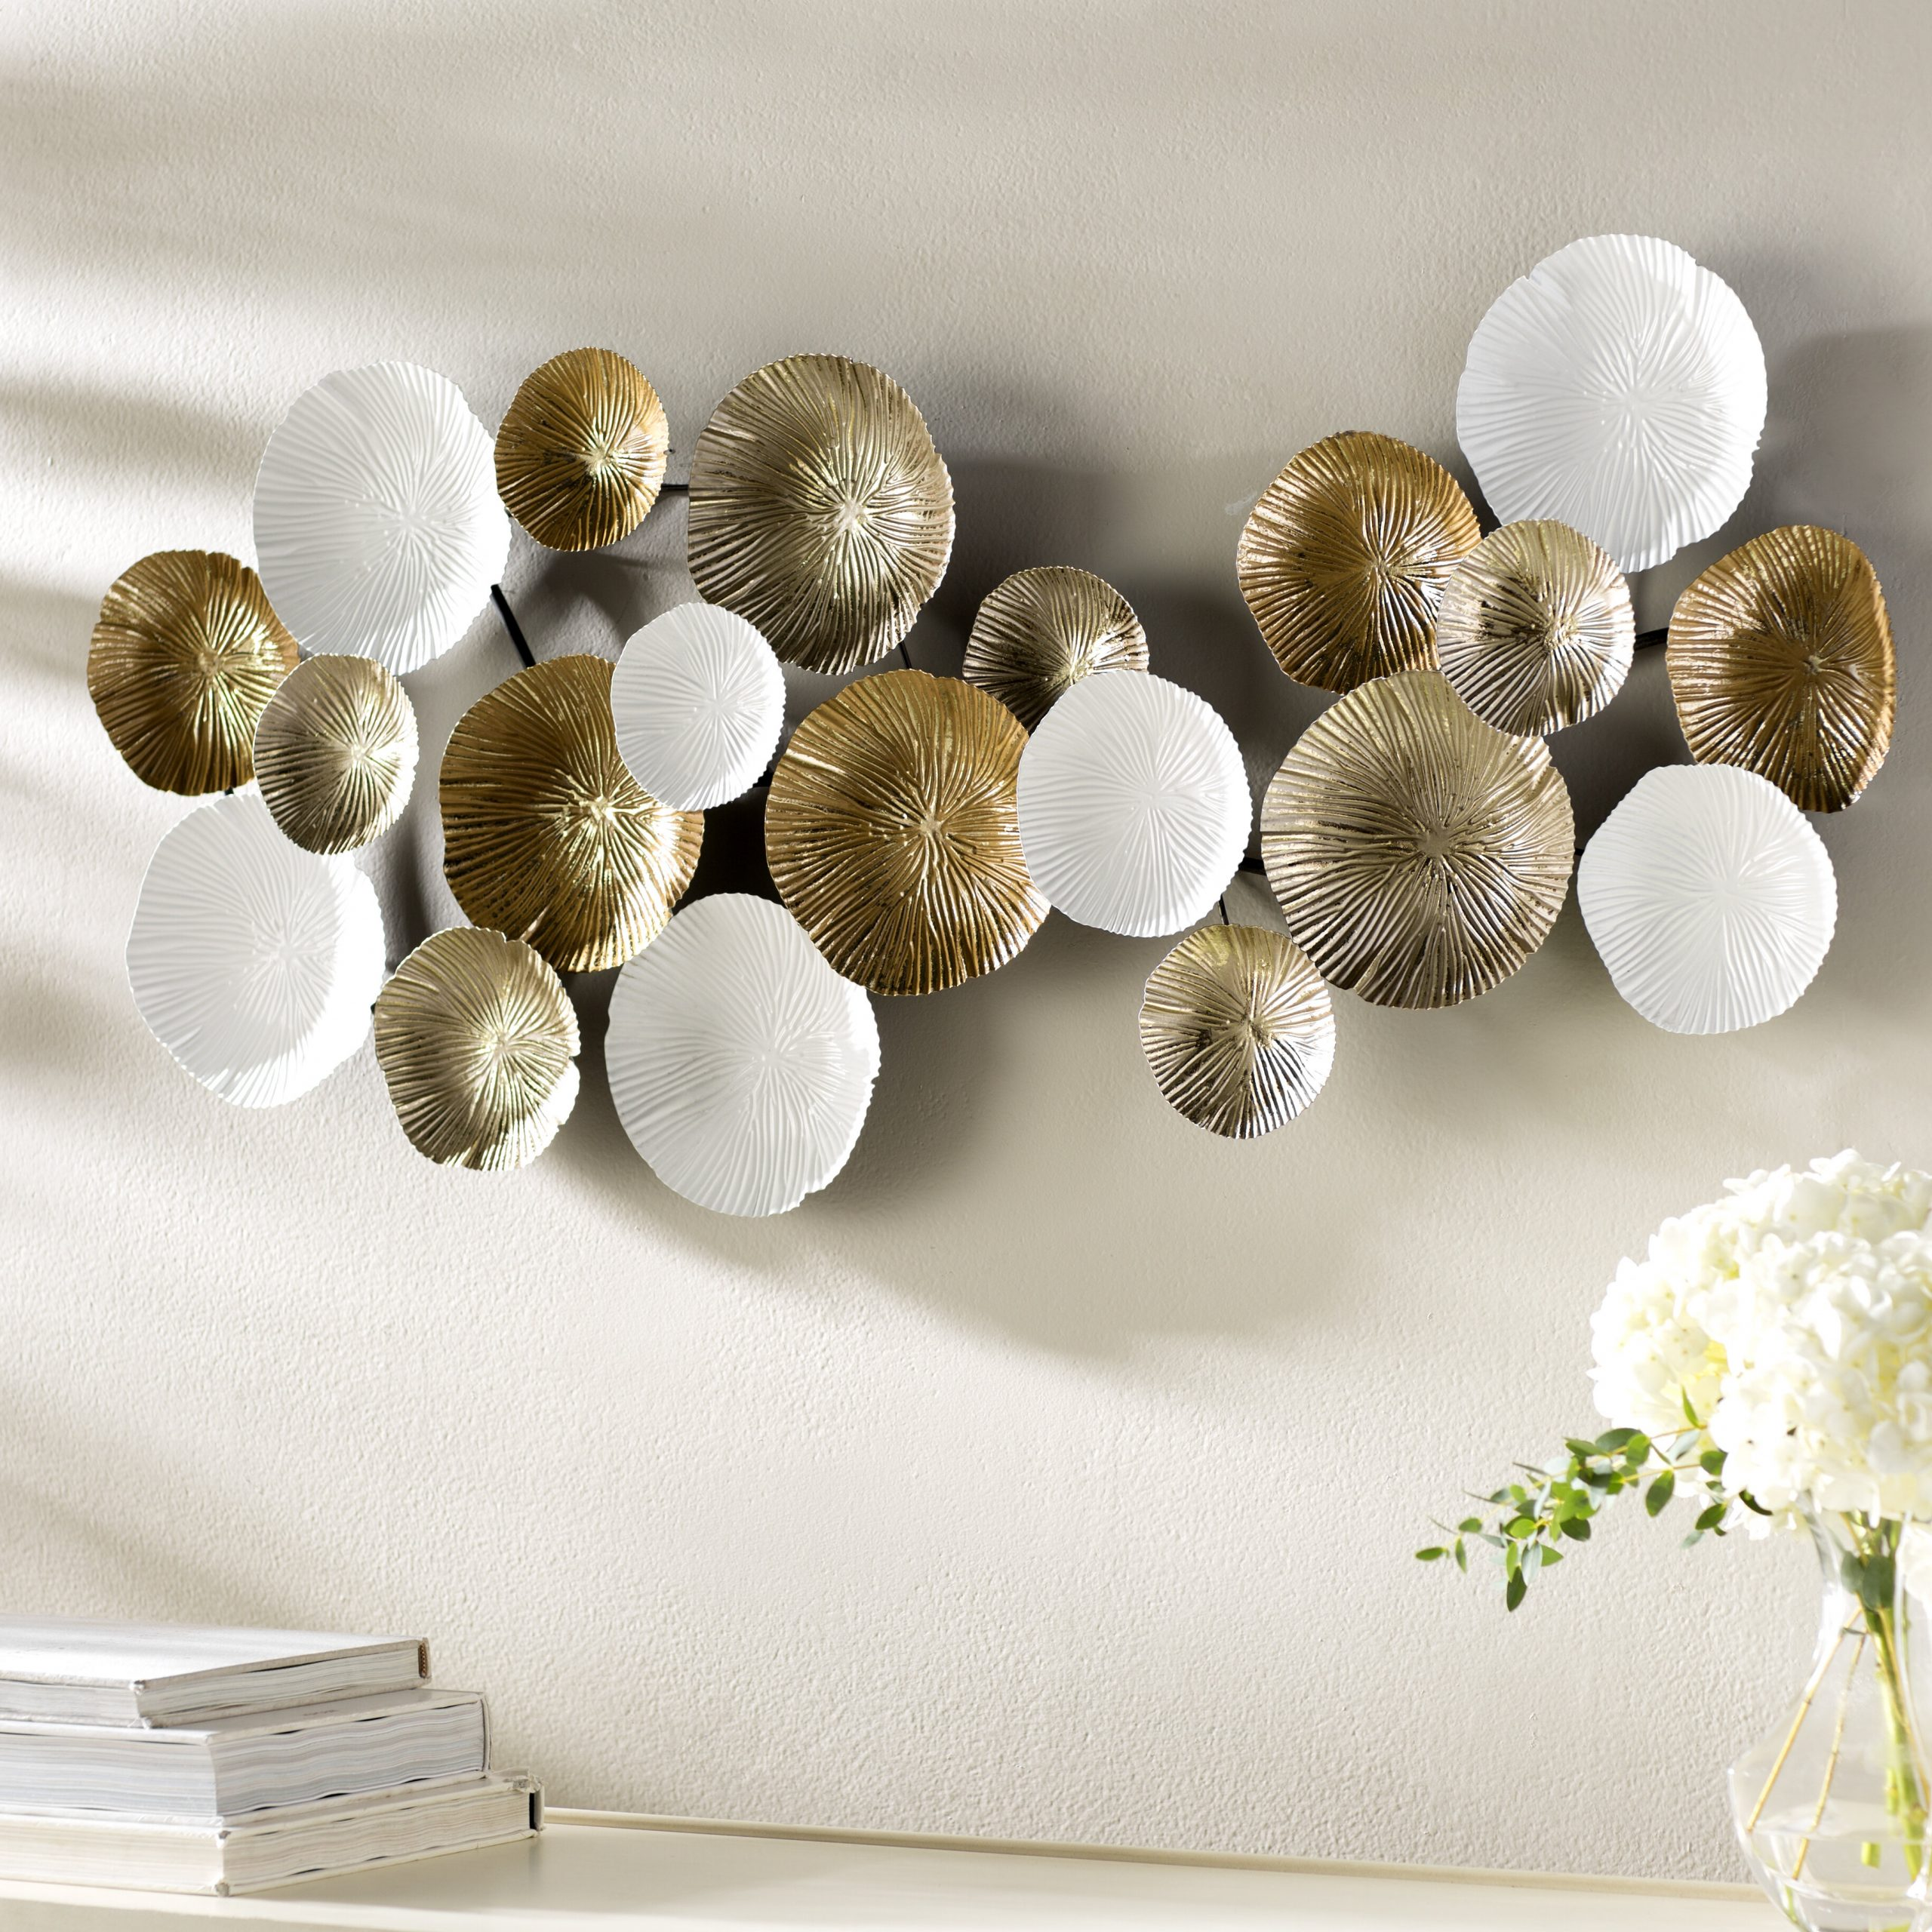 Multi Circles Metal Wall Décor Intended For Popular Metal Capiz Wall Decor By Wrought Studio (View 3 of 20)